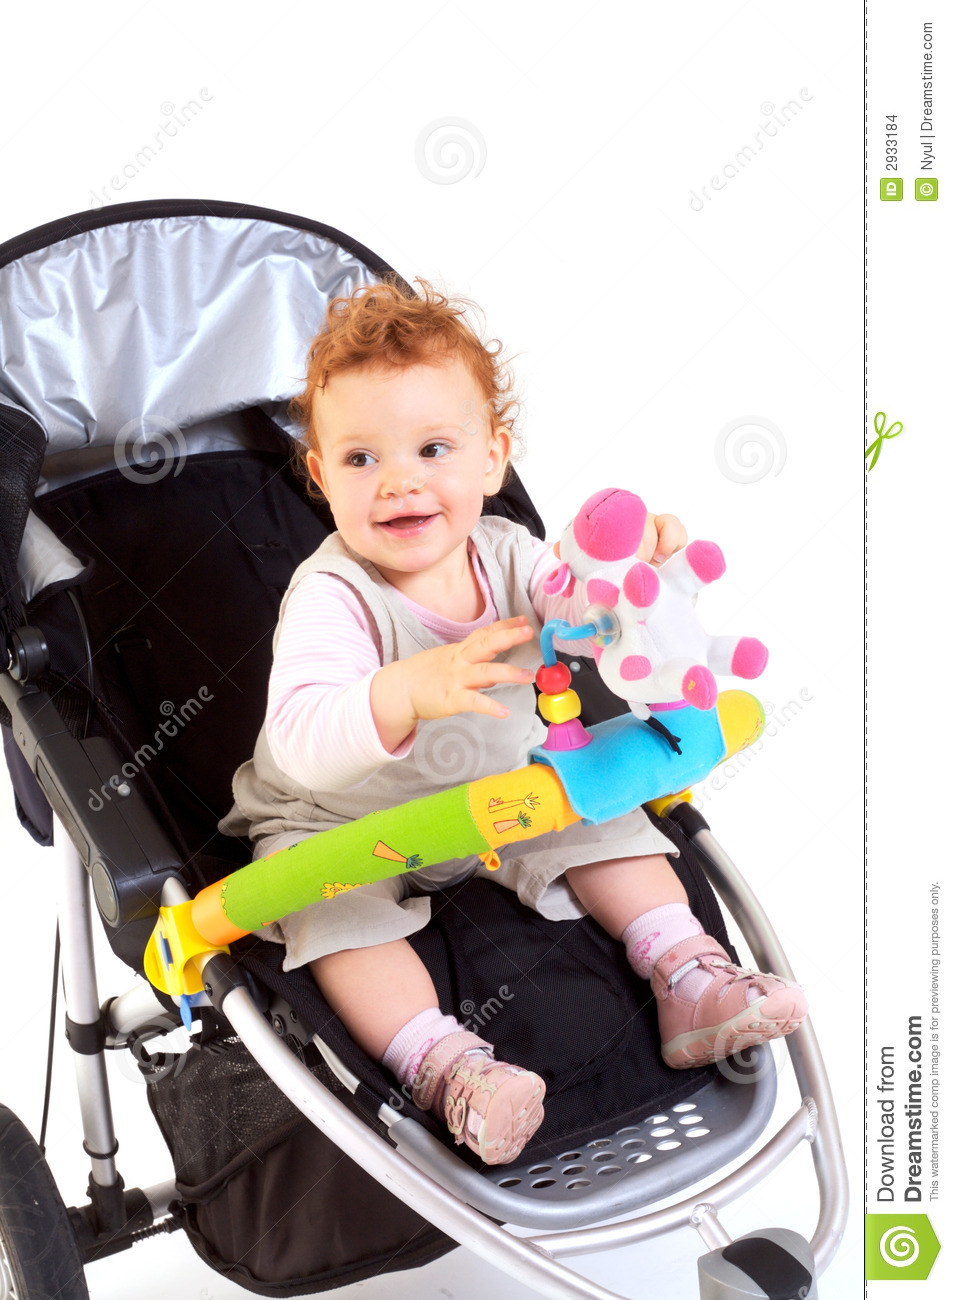 Newborn Stroller Happy Baby In Stroller Stock Photo Image Of Laughing